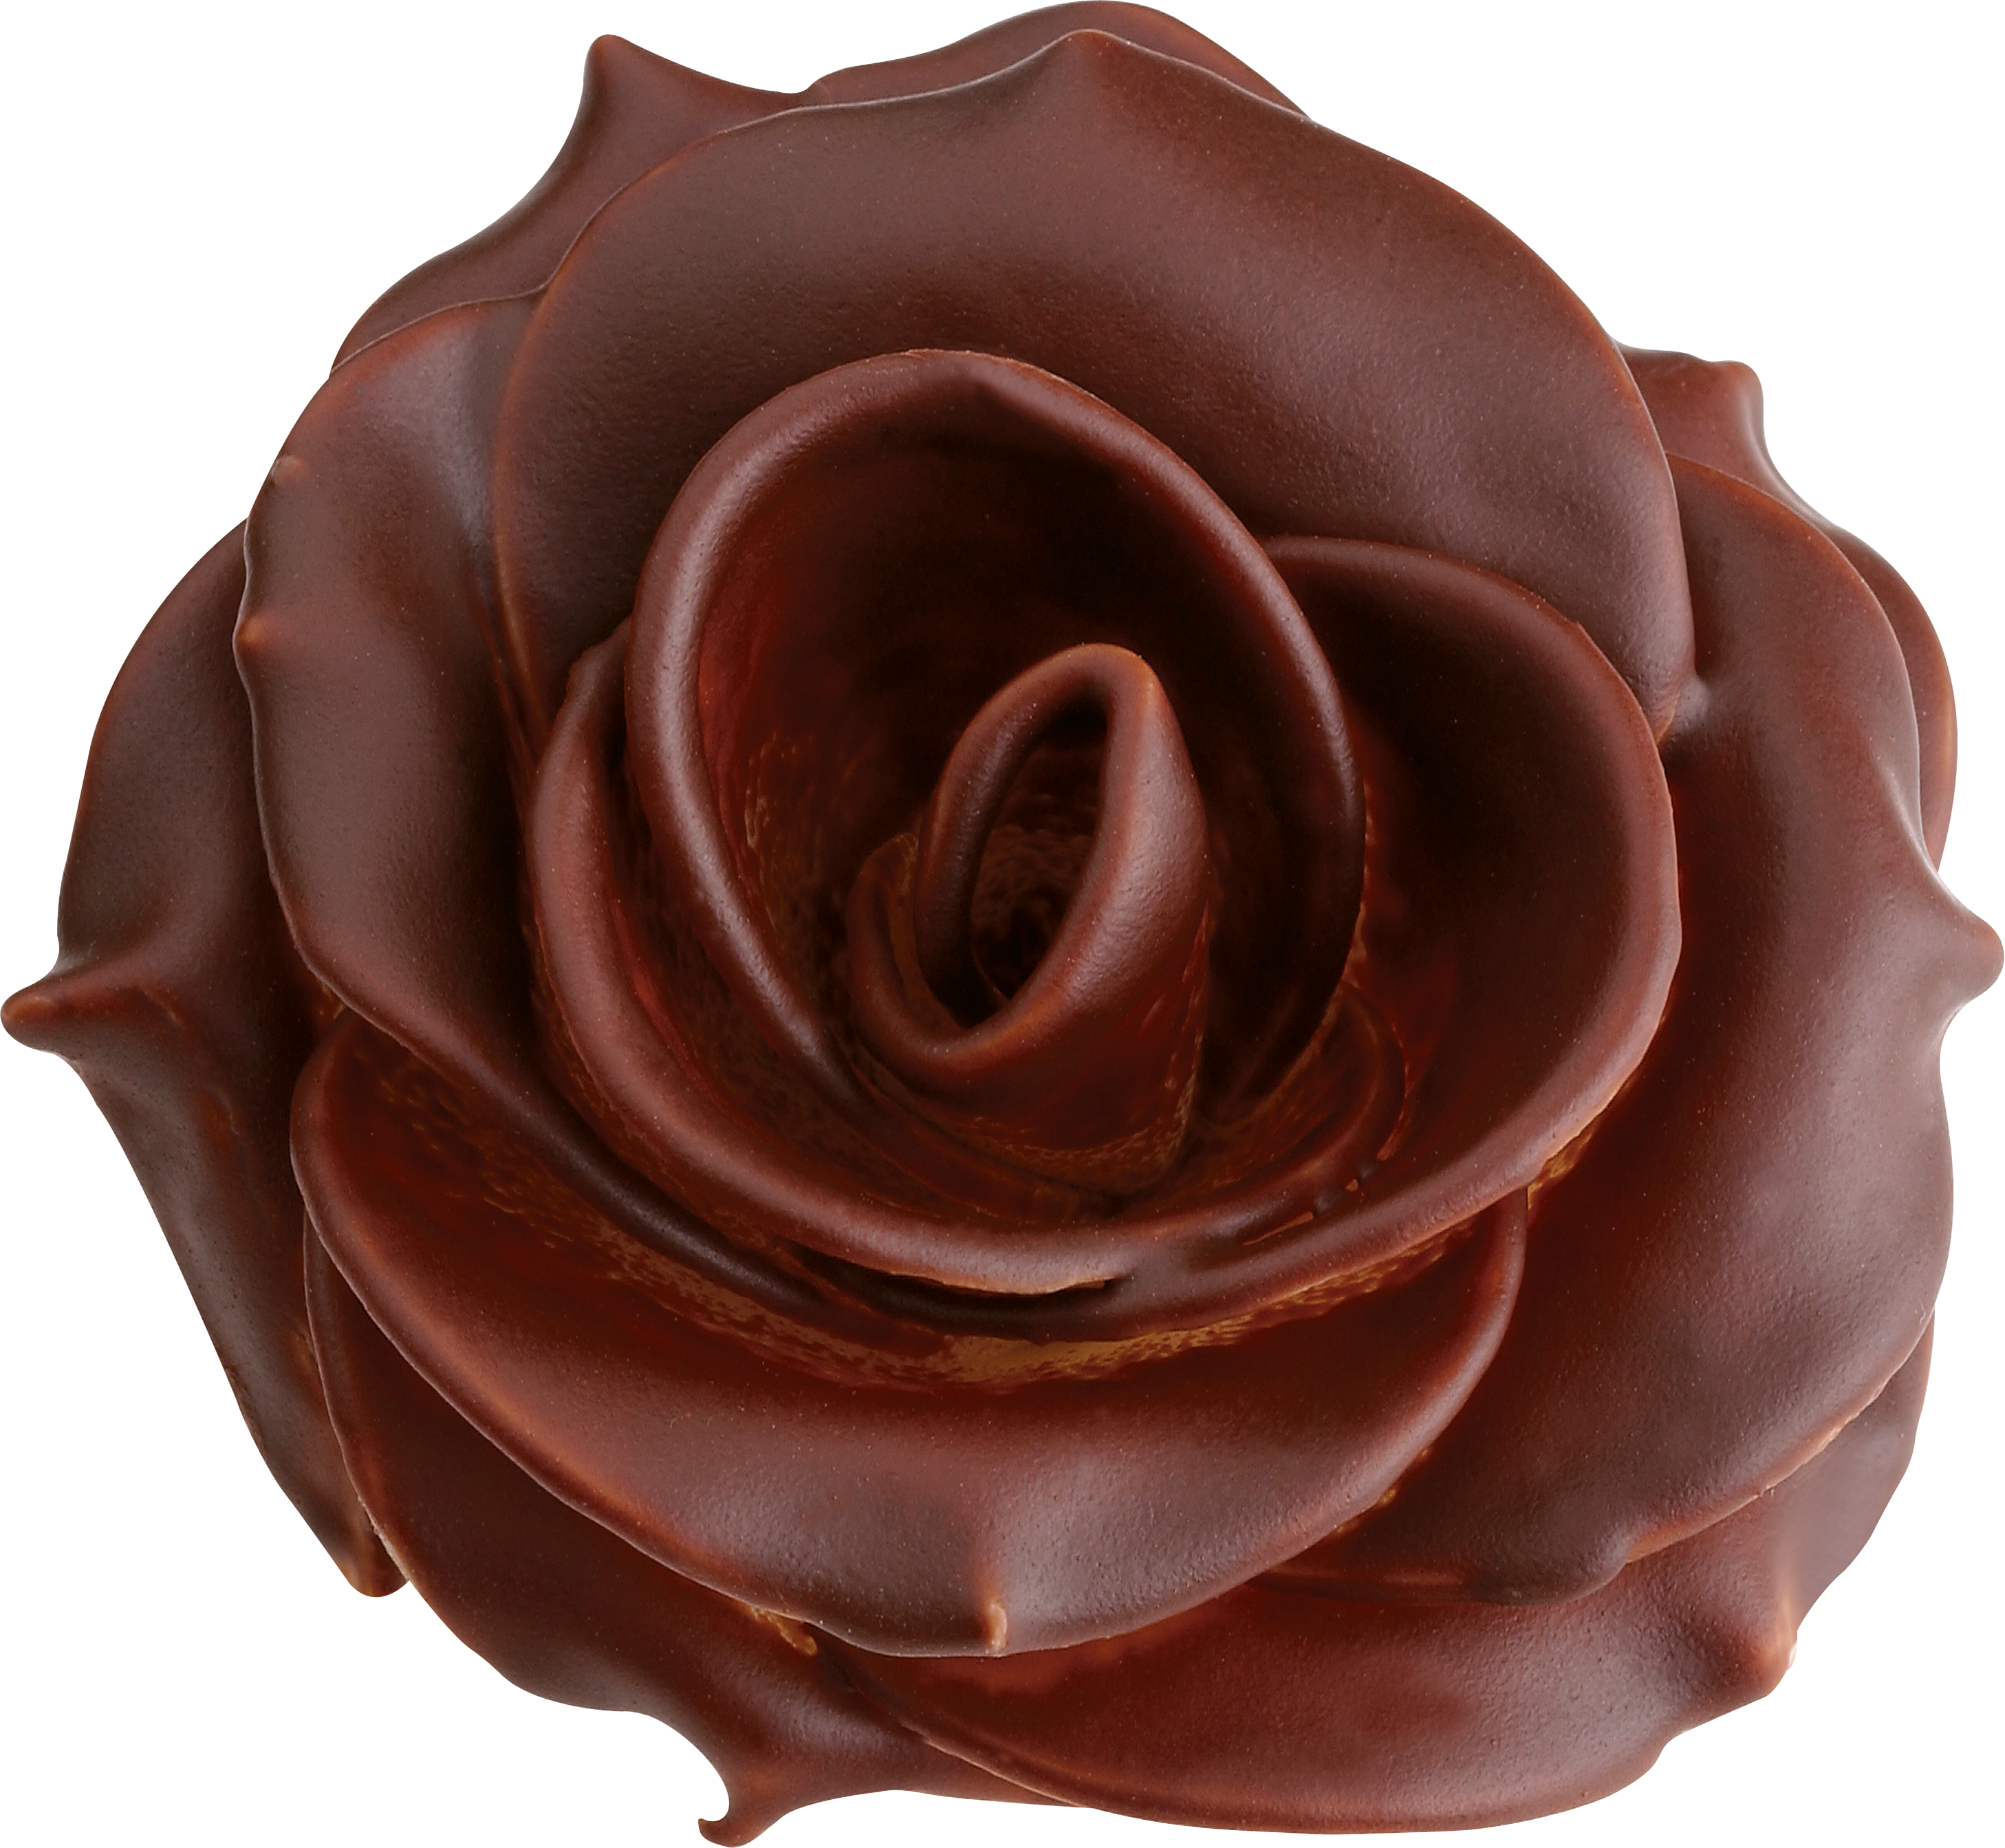 Rose Chocolate Png image #32773